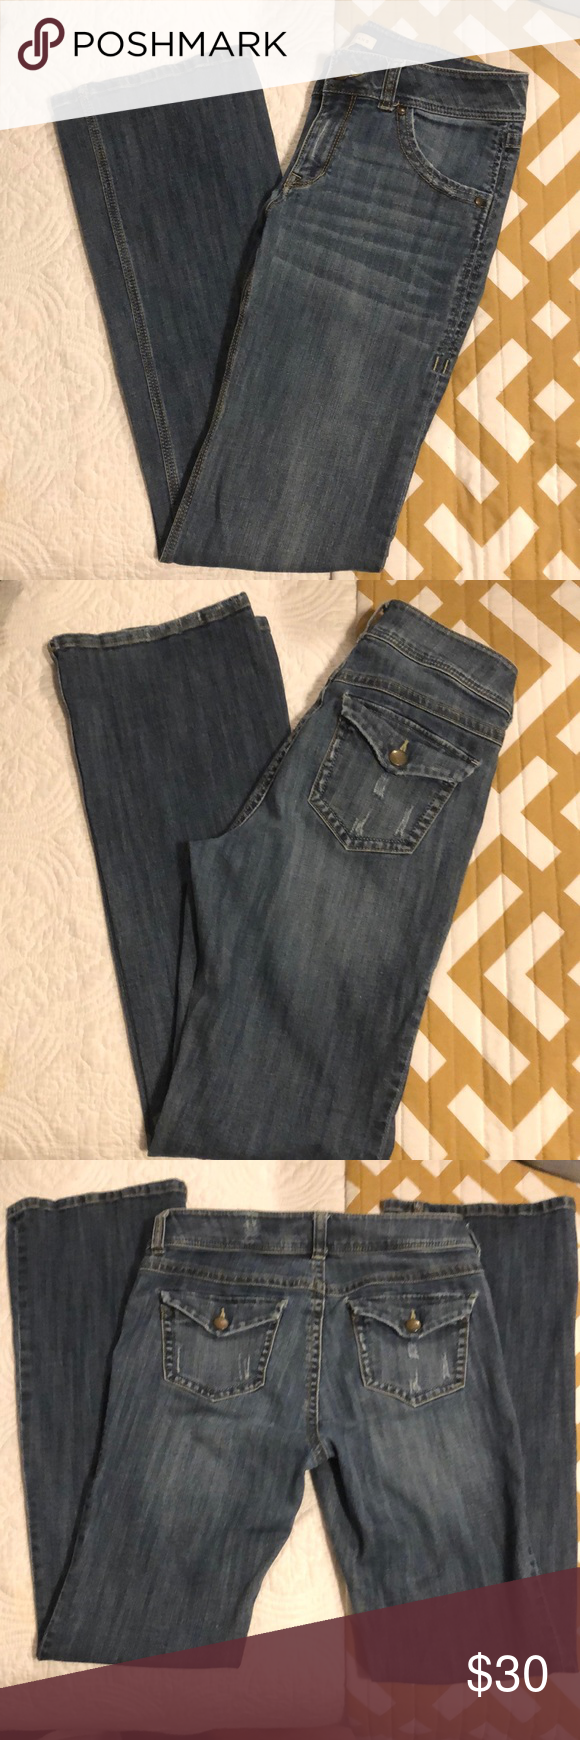 Cabo jeans size 8 Nice pair of distressed Cabi jeans  Approx